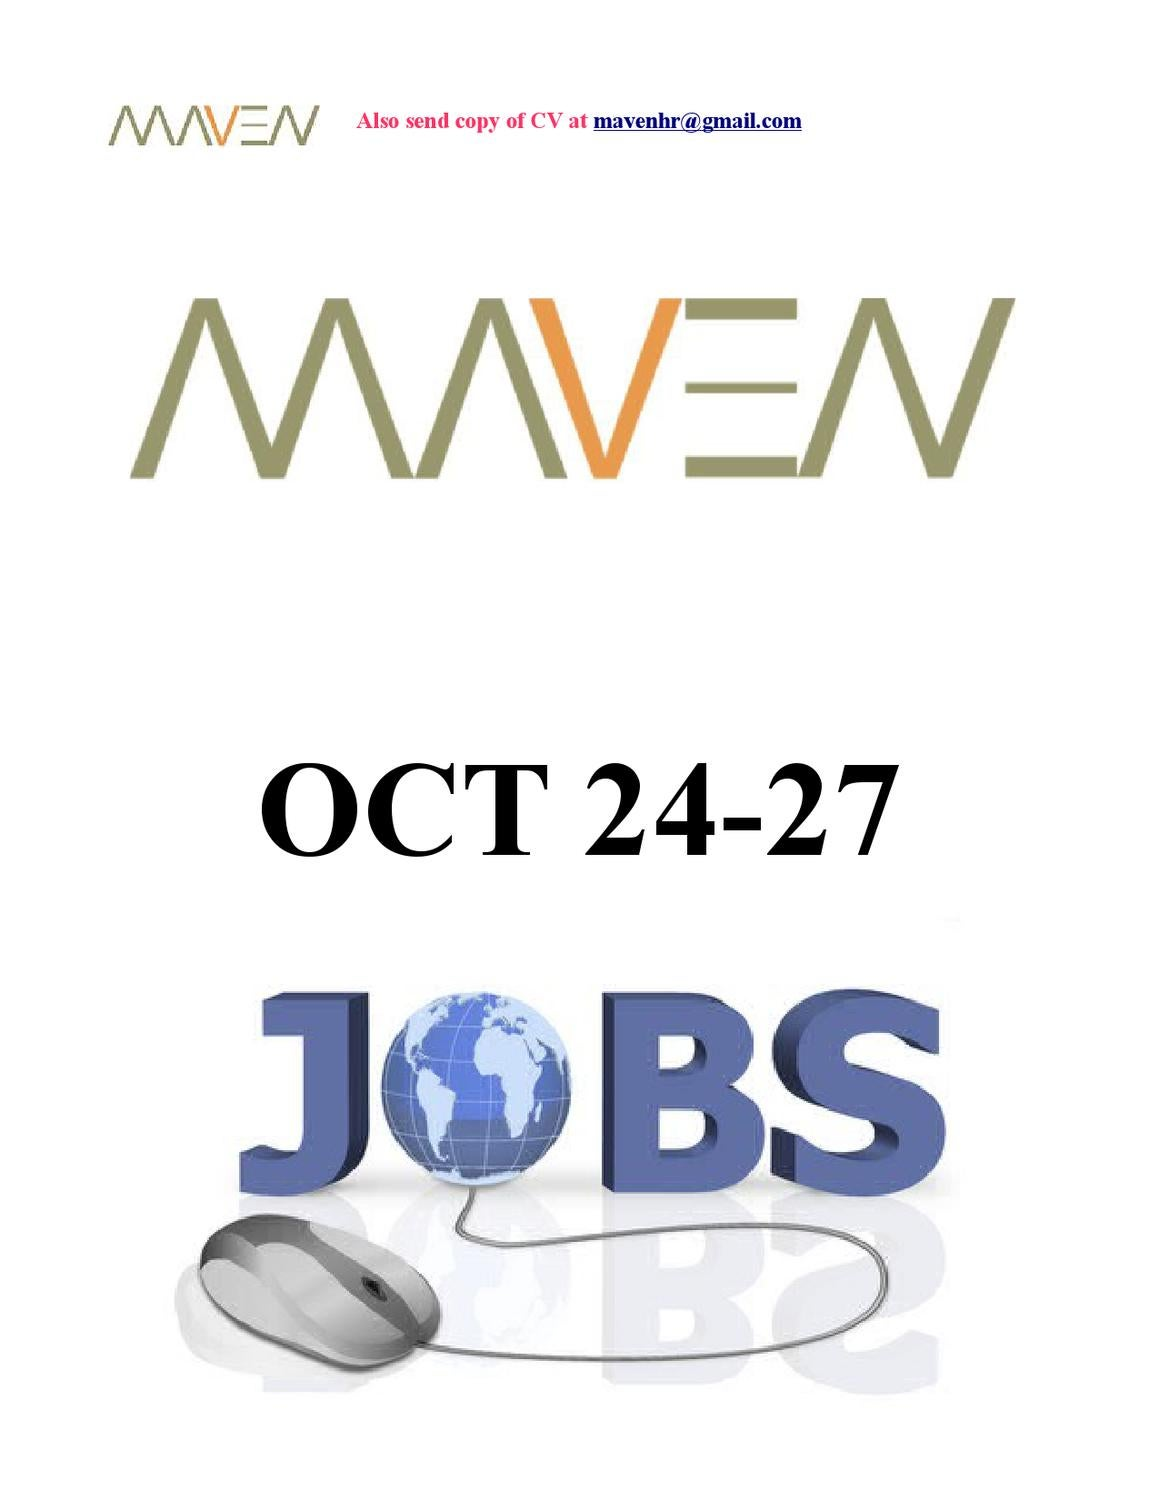 Maven Jobs Oct 24 To 27 By Hr Issuu Block Diagram Sbd Power Substation Control Ticom